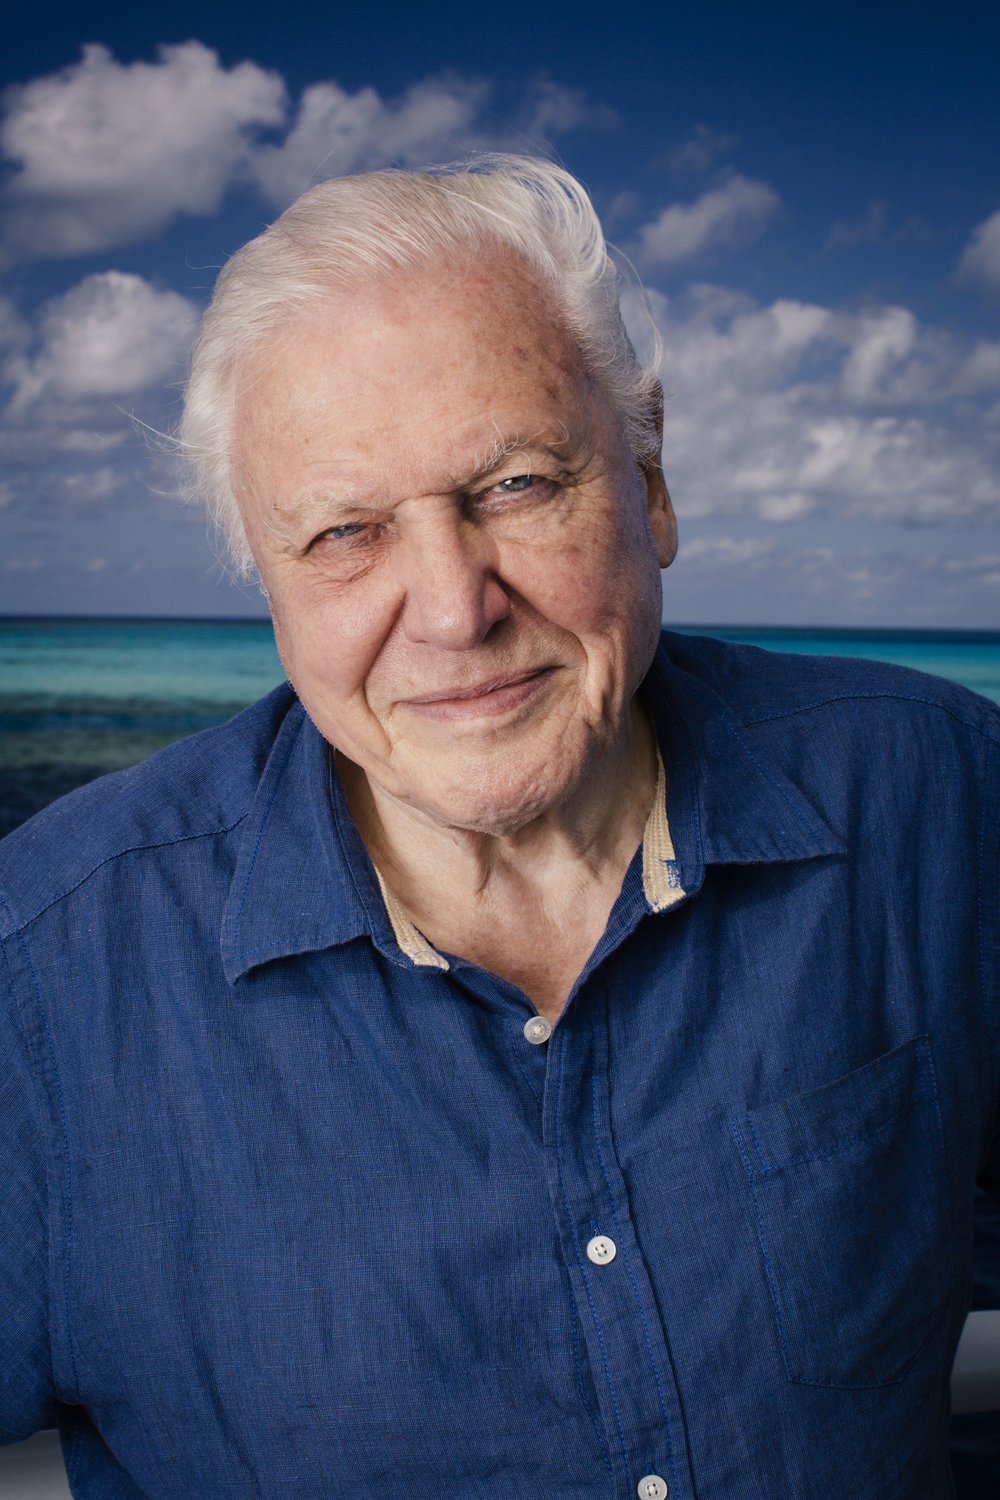 SIR DAVID ATTENBOROUGH-GREAT BARRIER REEF/AUSTRALIA